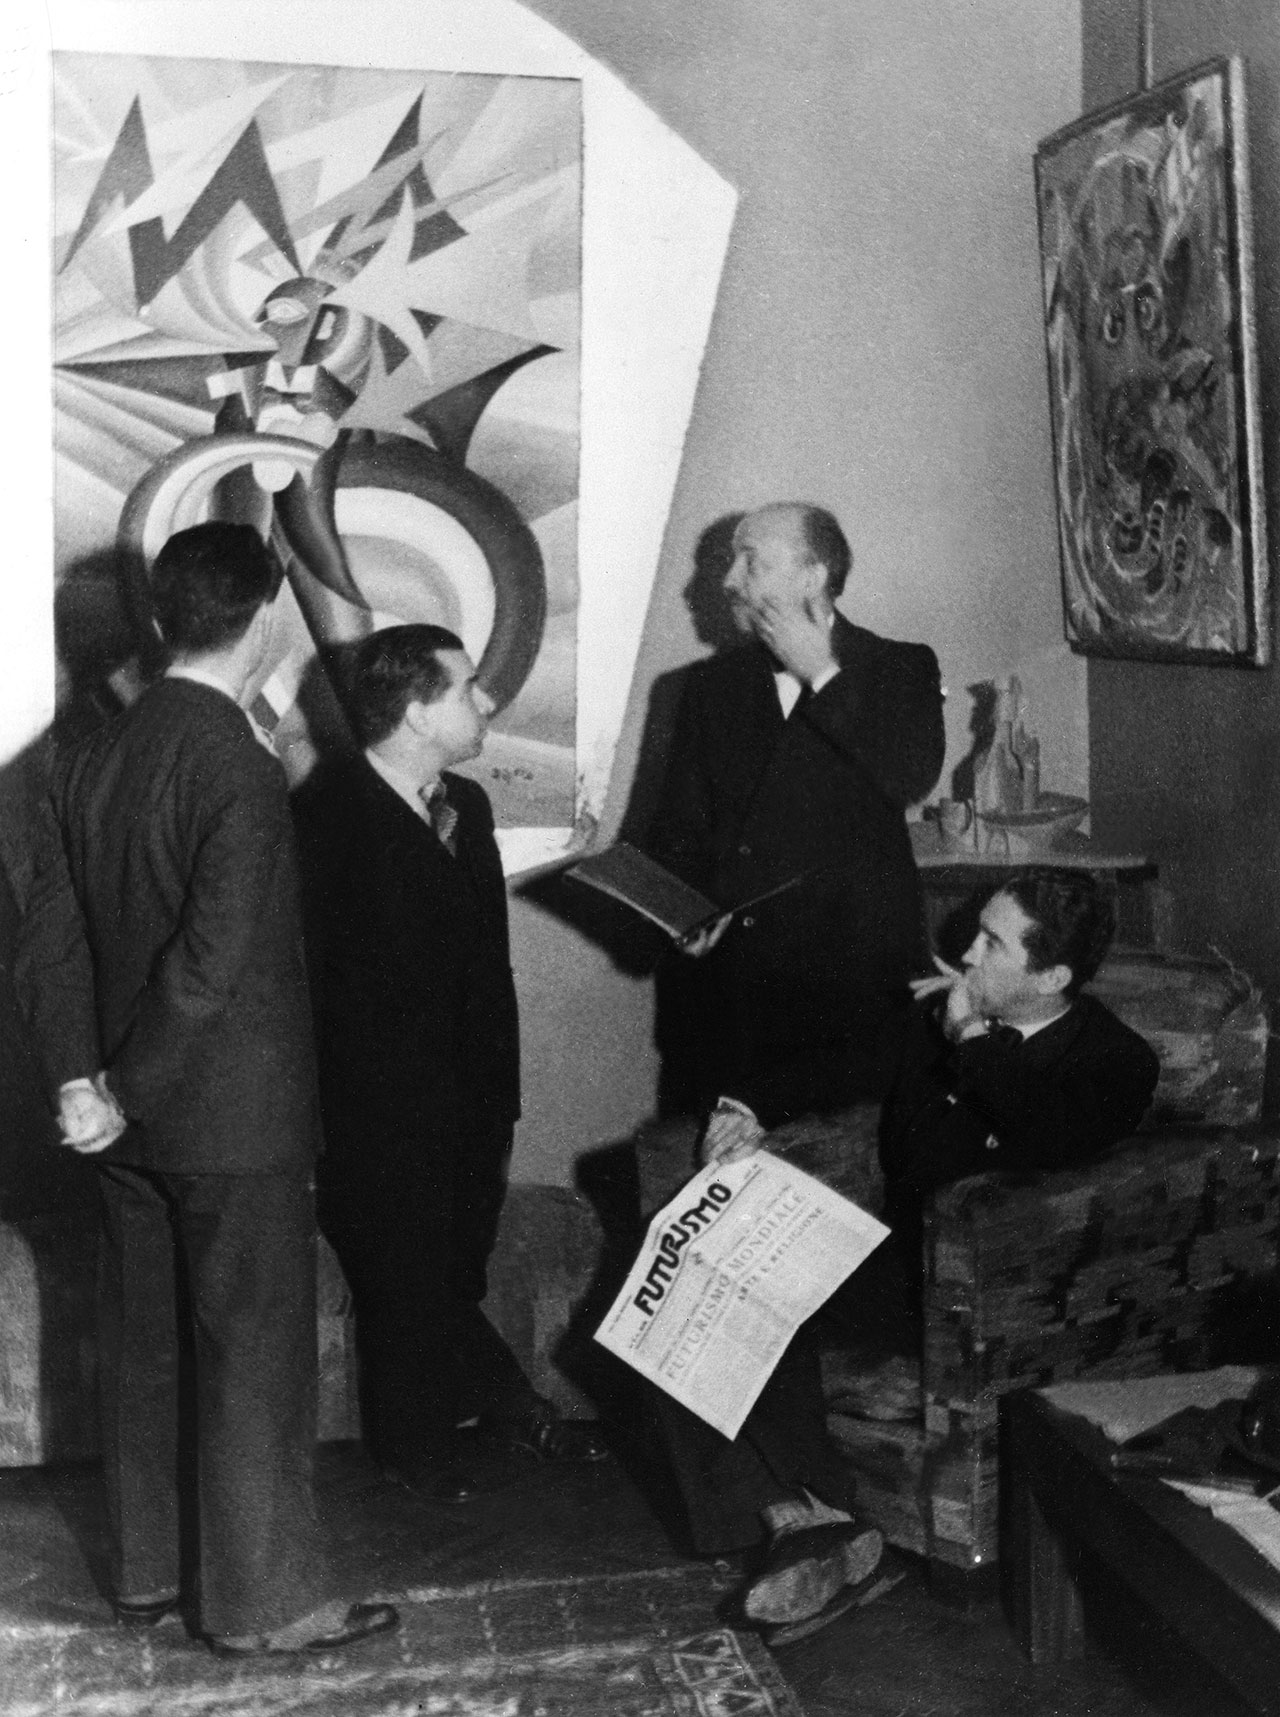 Filippo Tommaso with the editorial team of the magazine 'Futurismo'. From right: Mino Somenzi, Filippo Tommaso Marinetti, Enrico Prampolini and Bruno G. Sanzin (back) In the photo the work Marinetti temporale patriottico, Ritratto psicologico (1924) by Fortunato Depero - For the work © Fortunato Depero by SIAE 2018 Photo: Felix H. Man - Koester - 1931 Ullstein Bild - Felix H. Man /Archivi Alinari, Firenze.